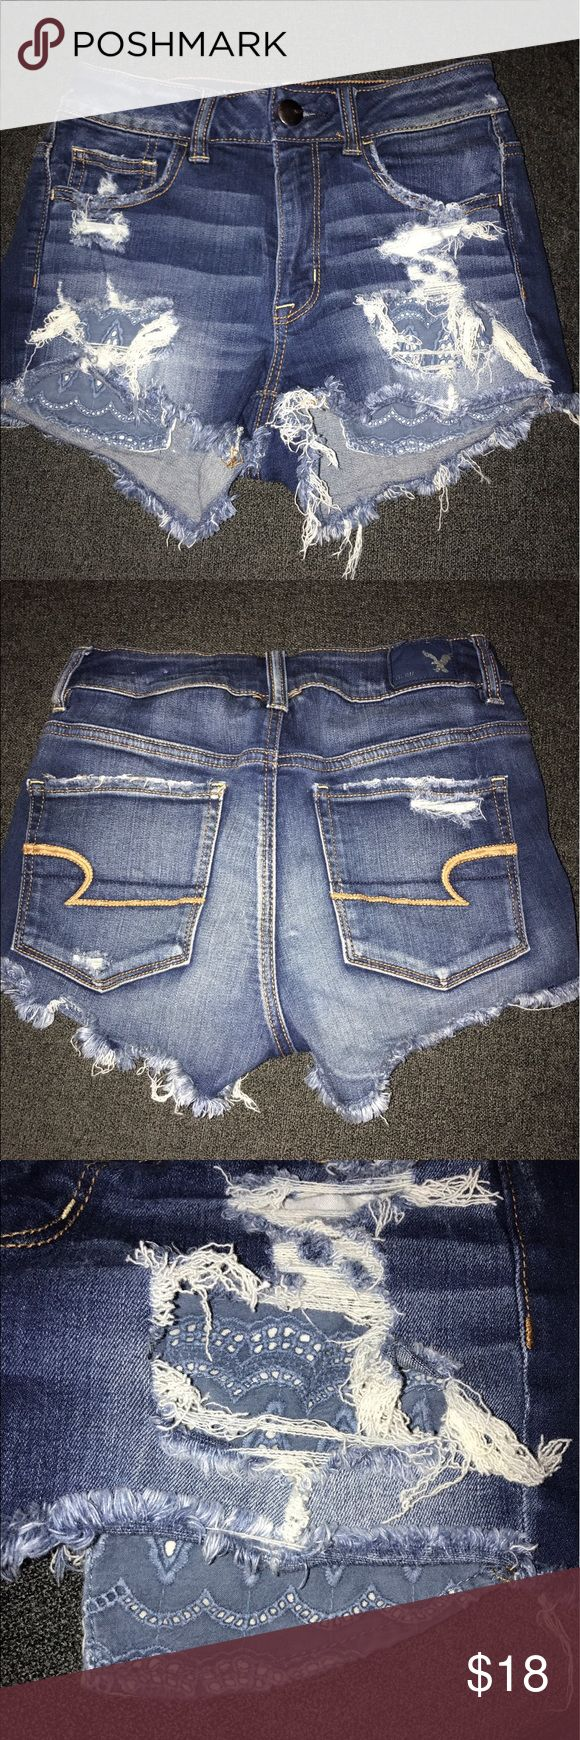 American Eagle Jean Shorts Dark wash American Eagle shorts with decorated pockets, worn twice. Super stretchy American Eagle Outfitters Shorts Jean Shorts